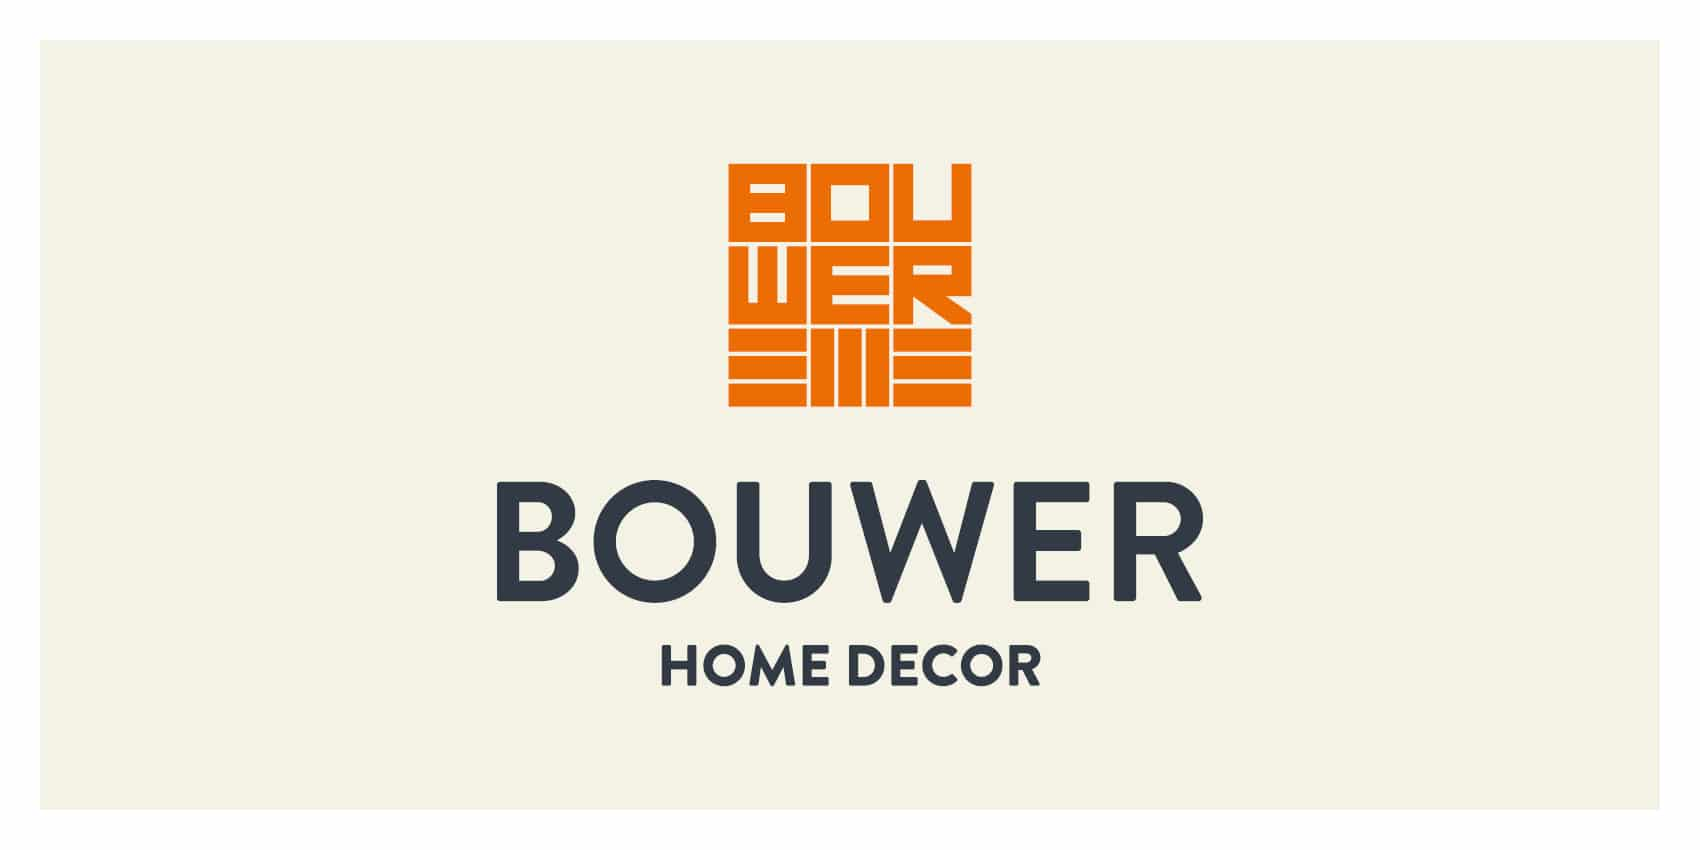 BOUWER flooring logo identity graphic design studio overberg swellendam stillbaai packaging colour advertising marketing brand building consulting